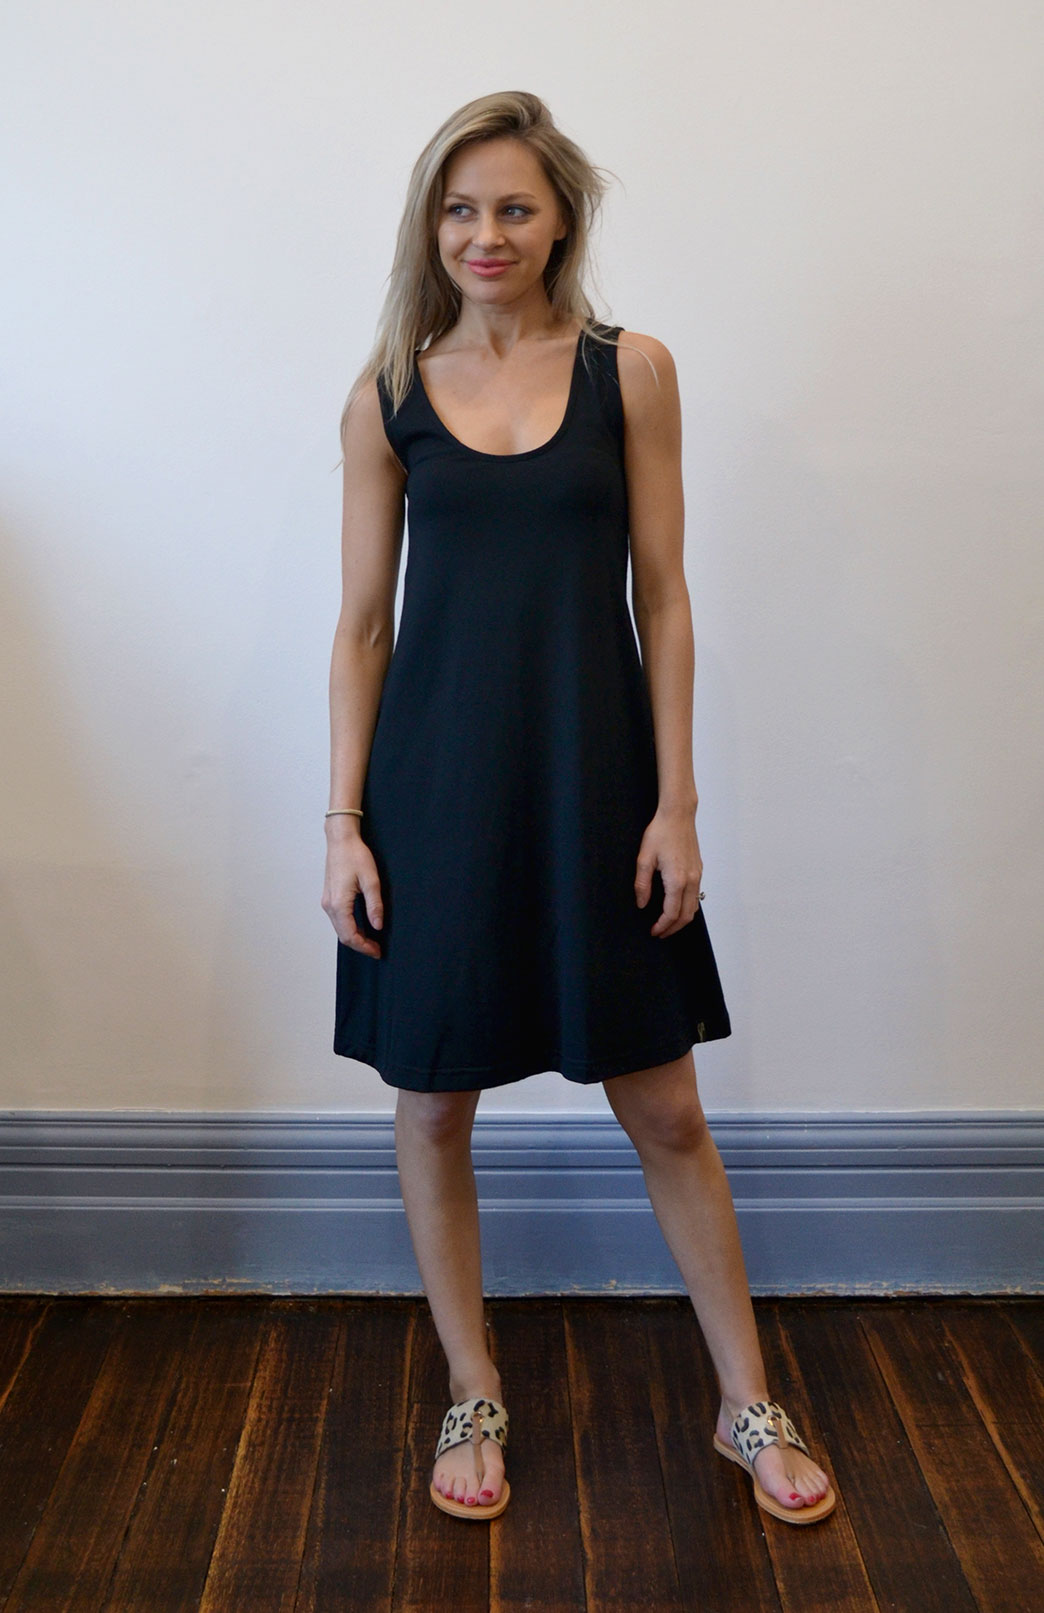 Classic Swing Dress - Women's Black Sleeveless Merino Wool Swing Dress - Smitten Merino Tasmania Australia